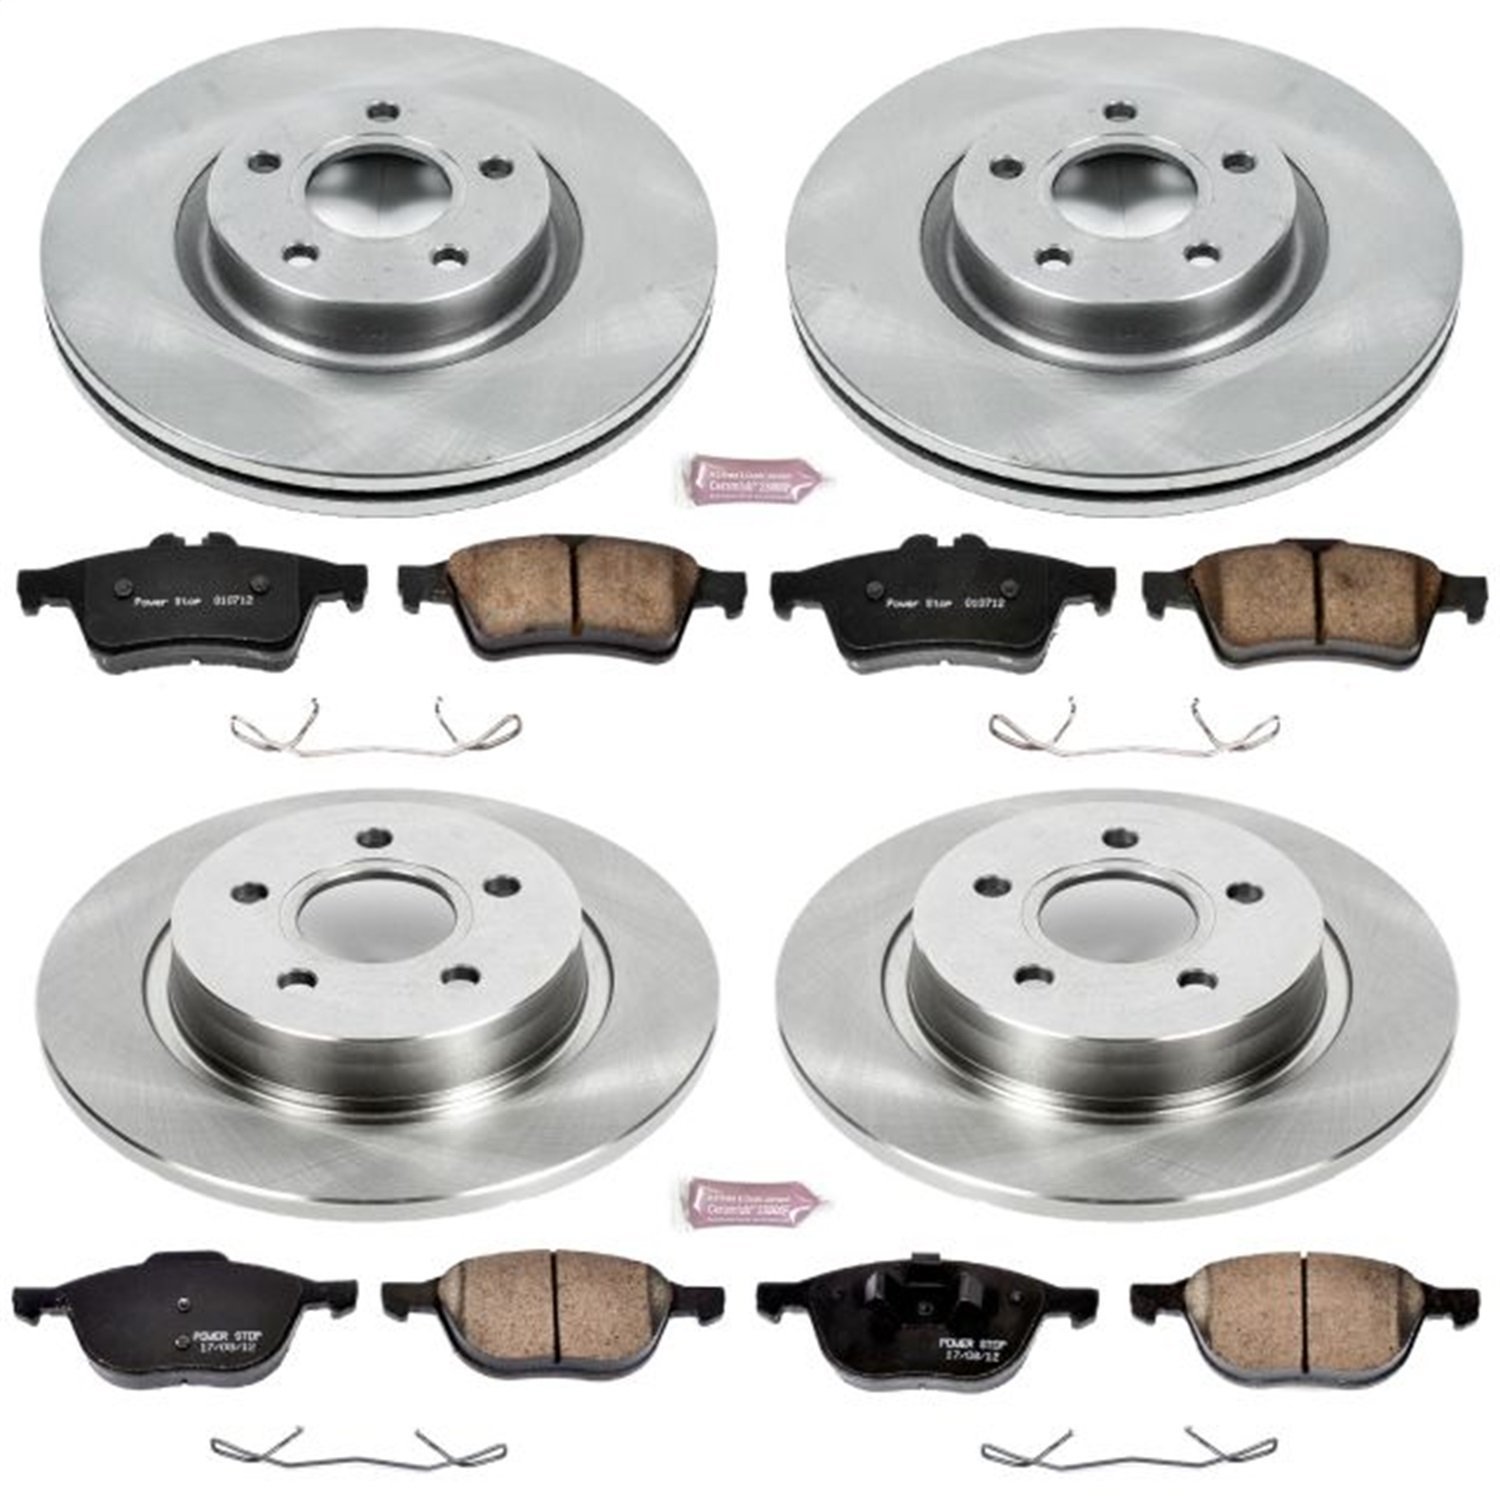 Front and Rear Power Stop KOE4051 Autospecialty Daily Driver OE Brake Kit